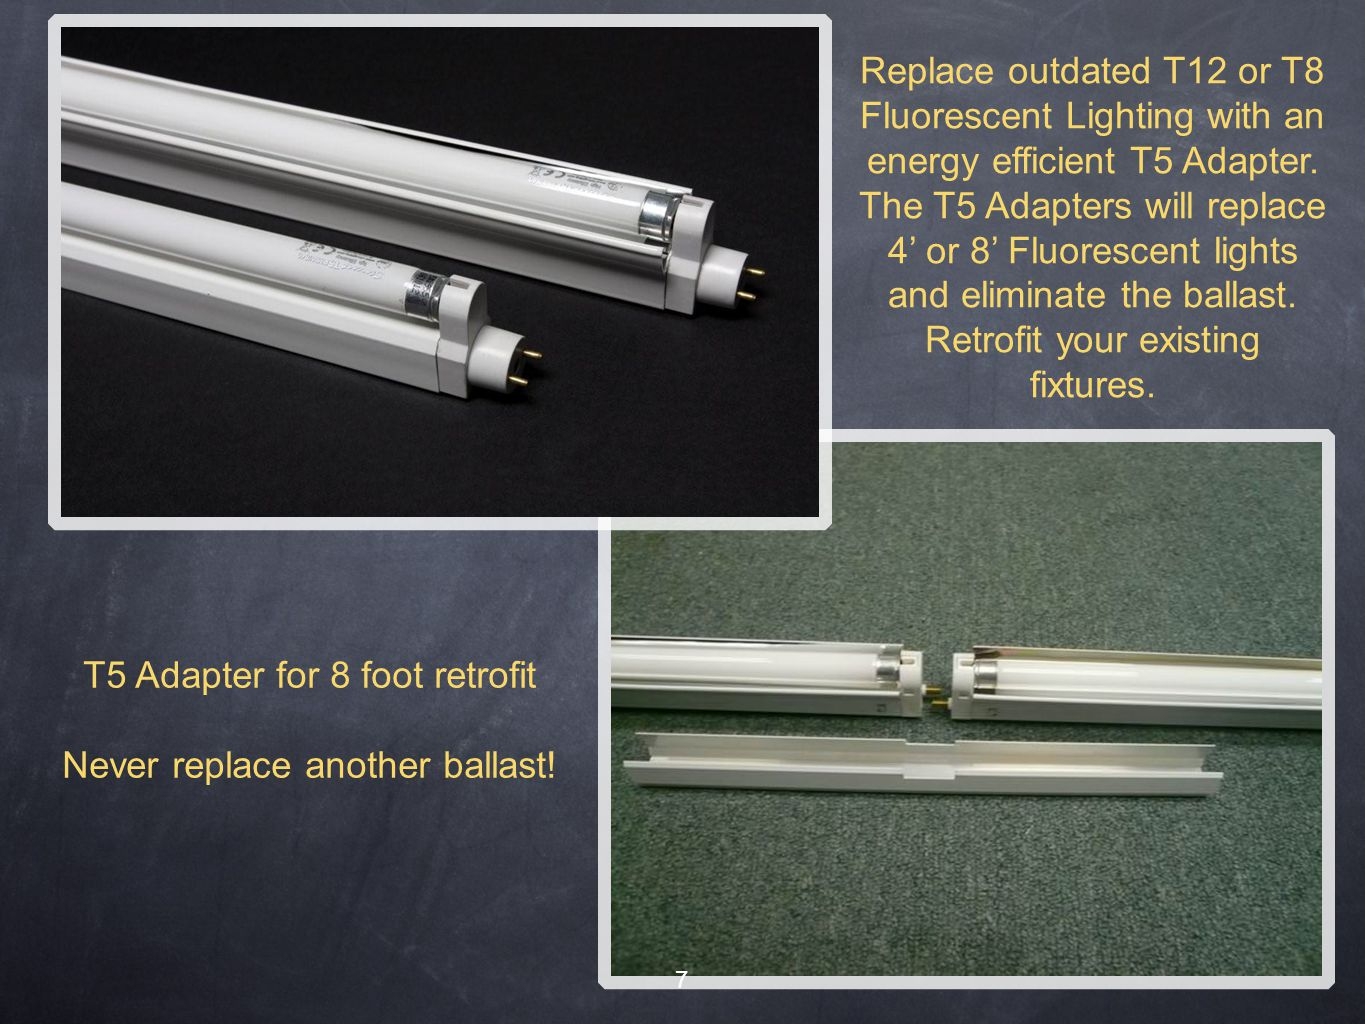 7 T5 Adapter for 8 foot retrofit Never replace another ballast.